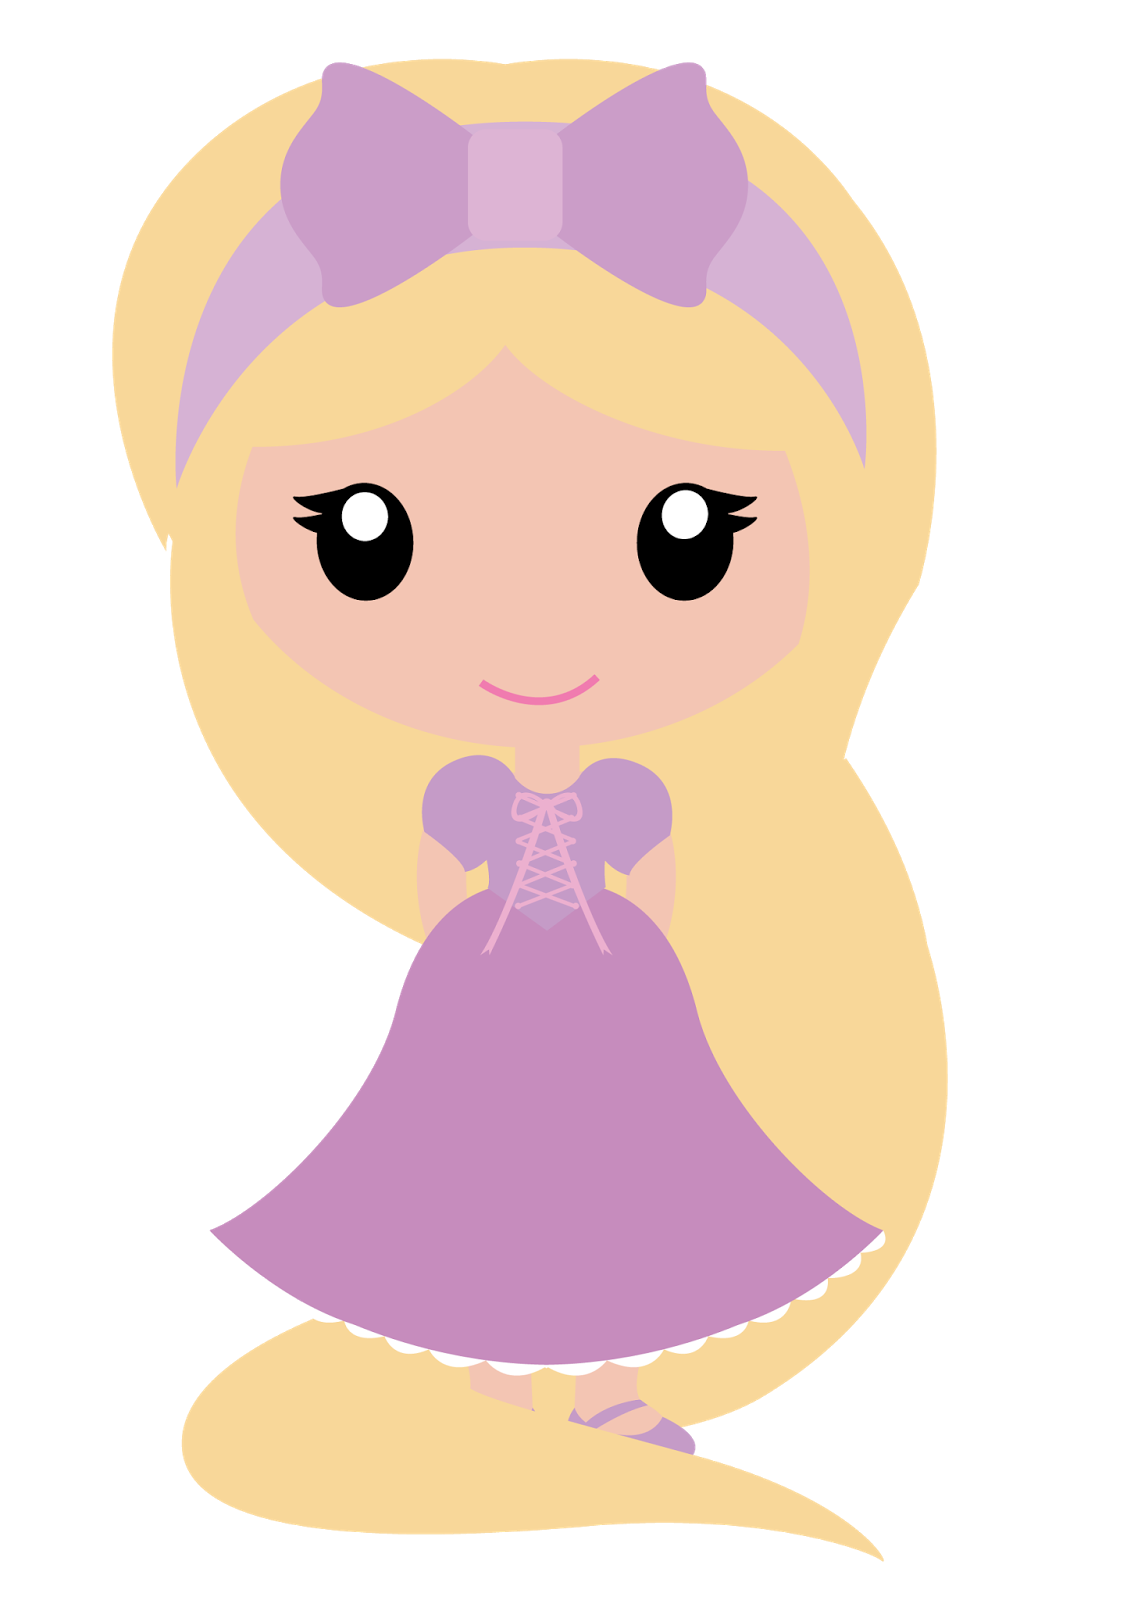 Clipart printables jpg royalty free stock Giggle and Print: 9 Princess Themed FREE Printables | Kid's Room ... jpg royalty free stock